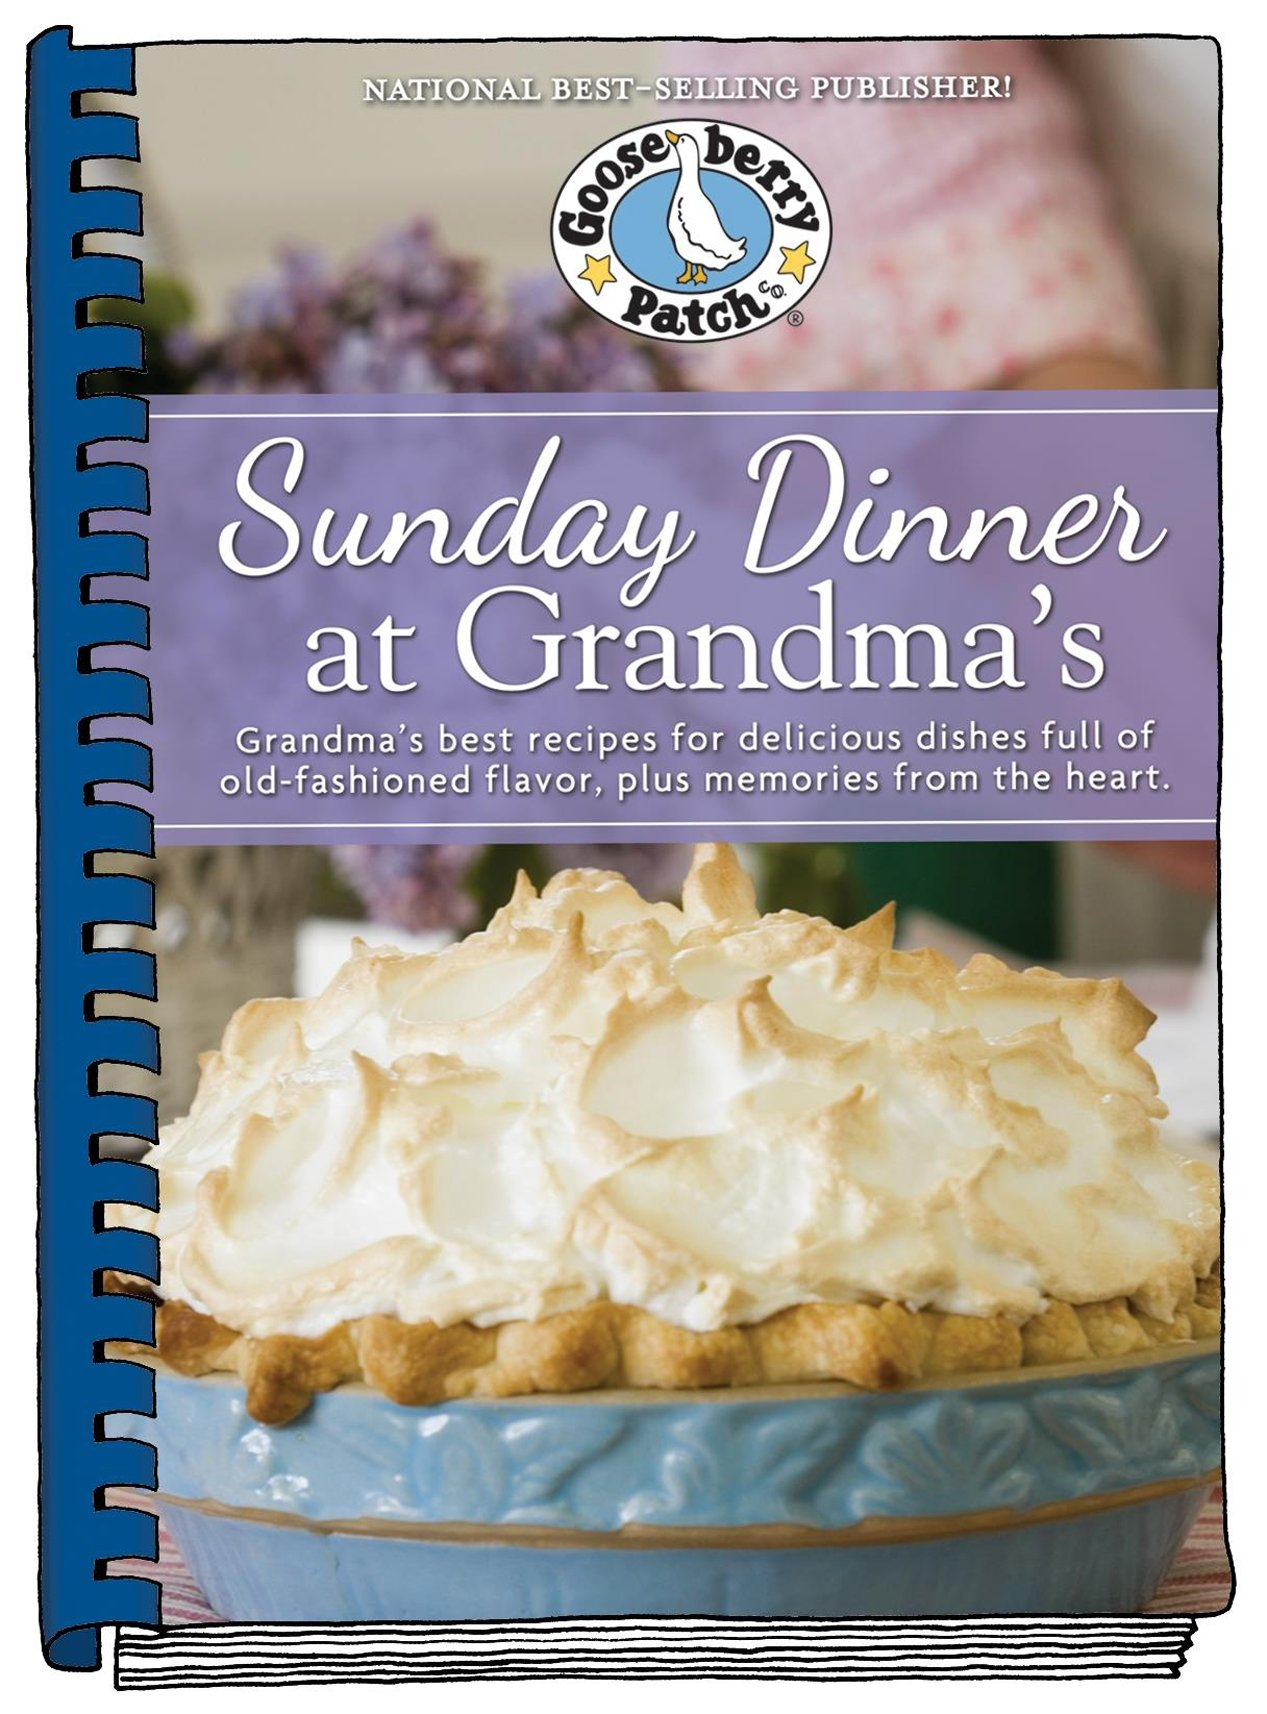 Sunday dinner at grandmas grandmas best recipes for delicious sunday dinner at grandmas grandmas best recipes for delicious dishes full of old fashioned flavor plus memories from the heart gooseberry patch forumfinder Images